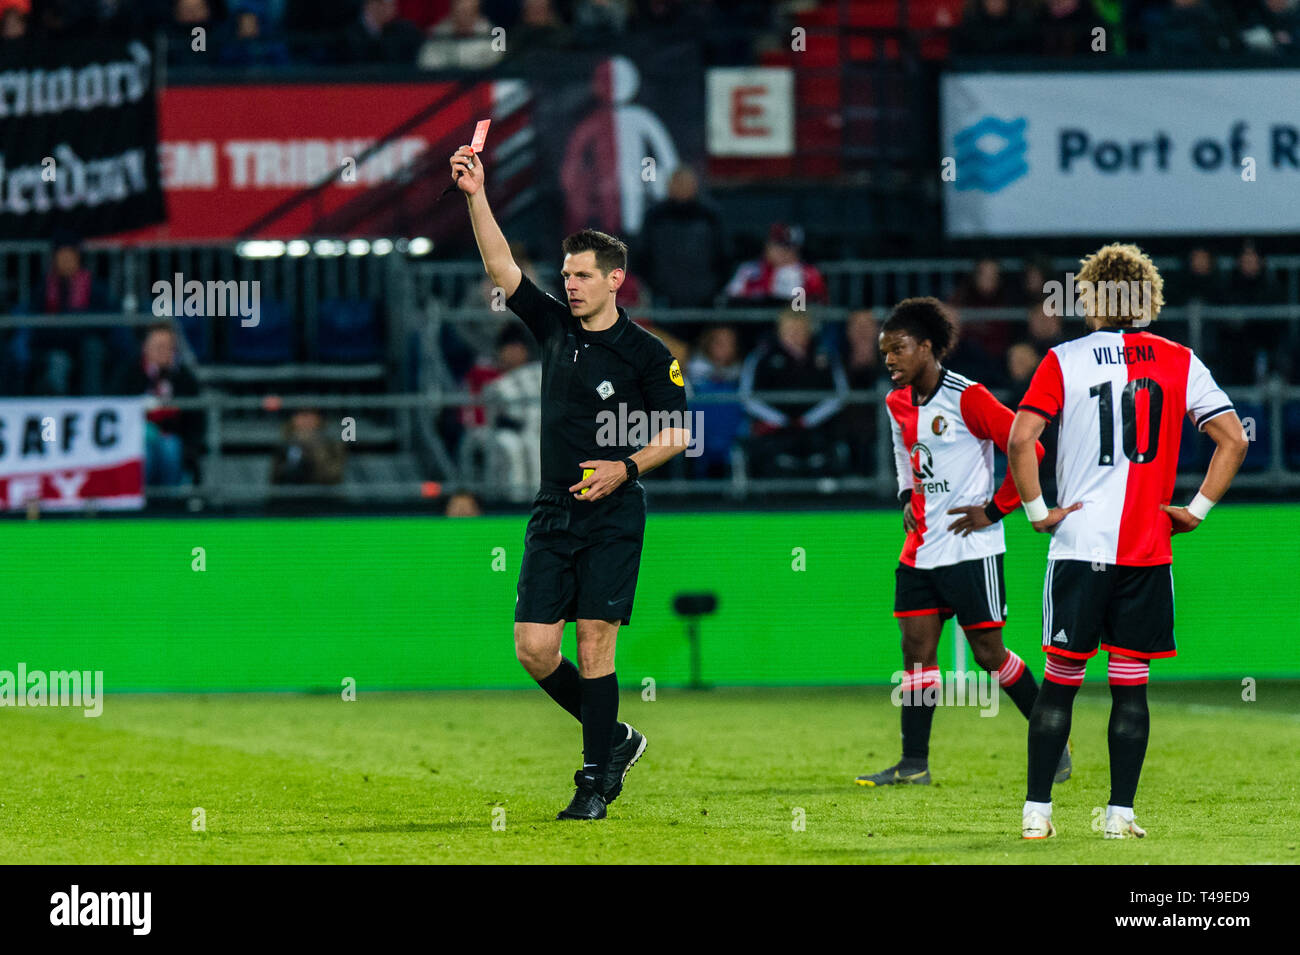 13th of april 2019 Rotterdam, The Netherlands Soccer Dutch Eredivisie Feyenoord v Heracles Almelo  Red card Feyenoord player Nicolai Jorgensen - Stock Image